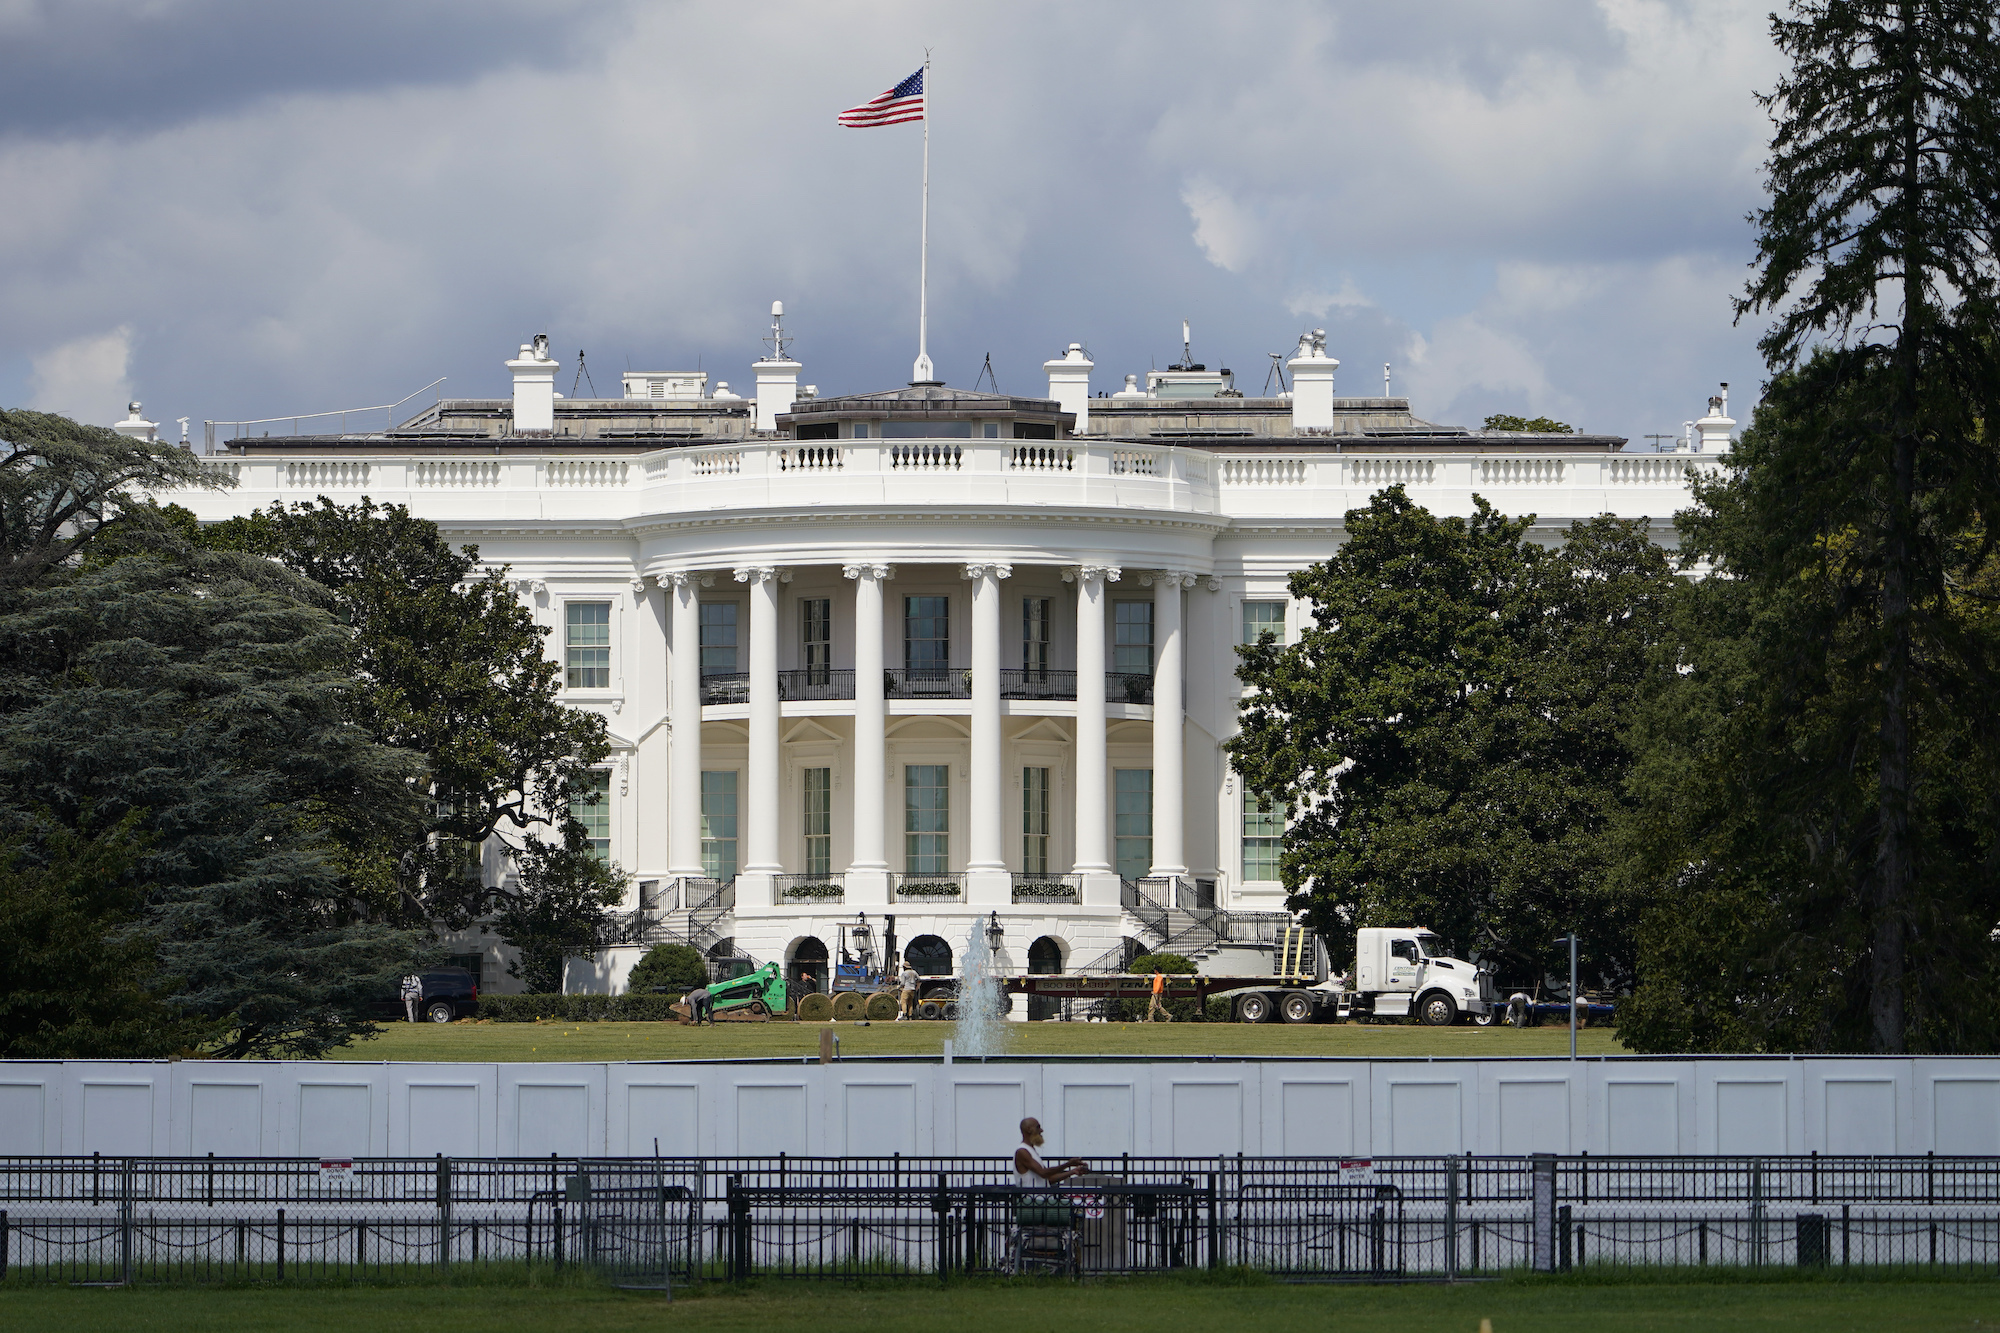 Package Addressed to Trump Containing the Poison Ricin Was Intercepted in White House Mail thumbnail